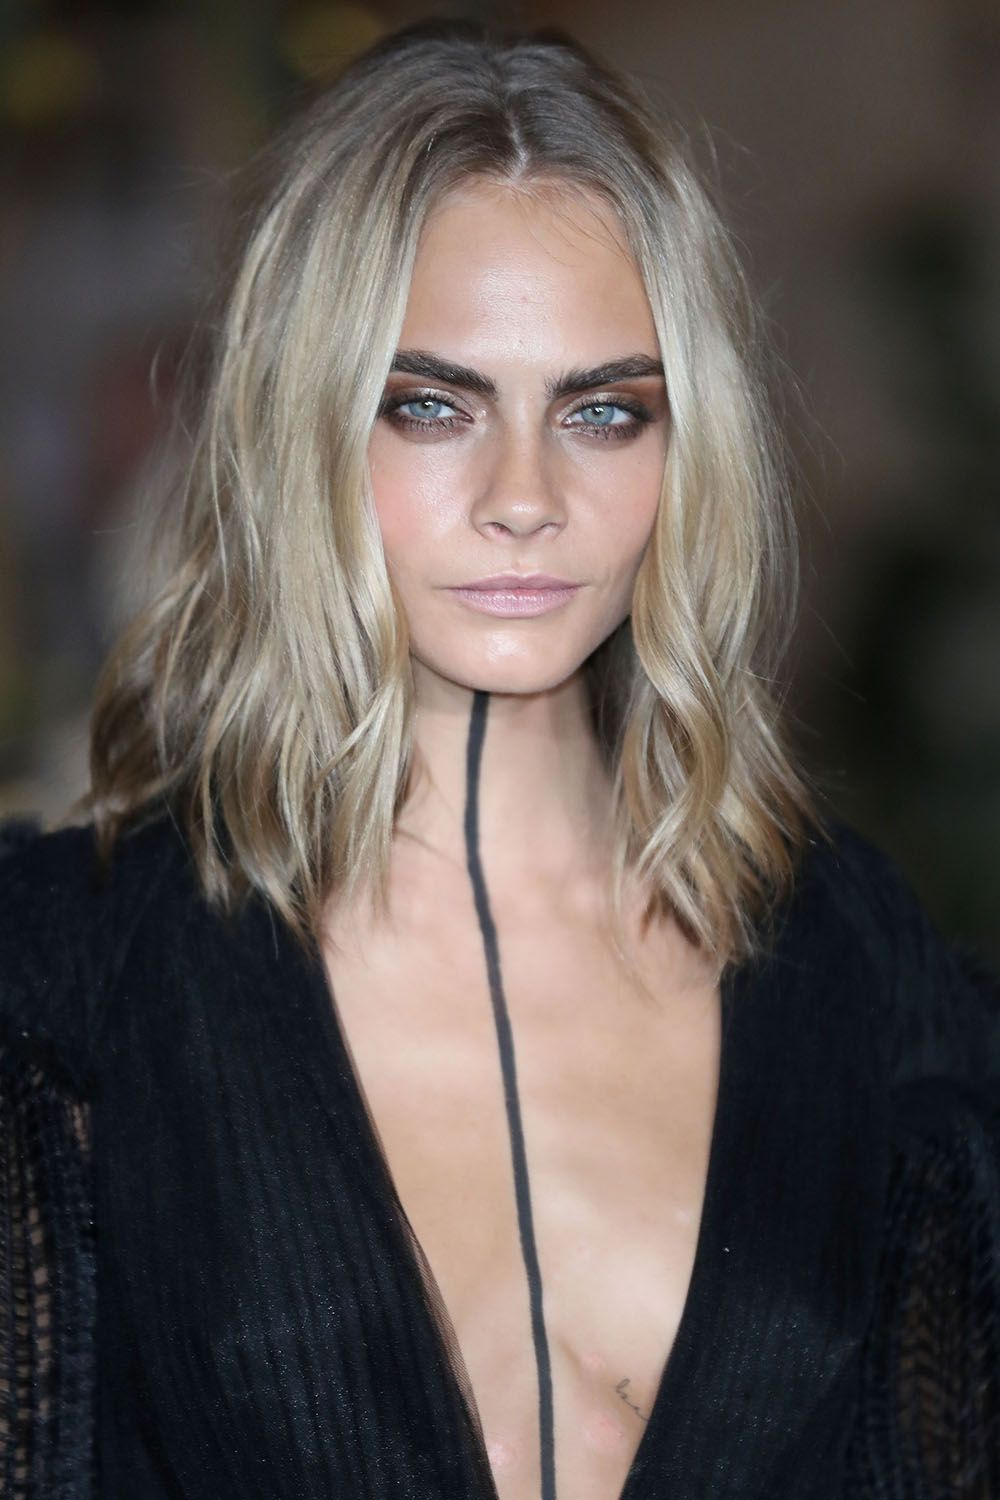 Summer Hairstyles Best Celebrity Haircuts For Spring And - Haircut girl model